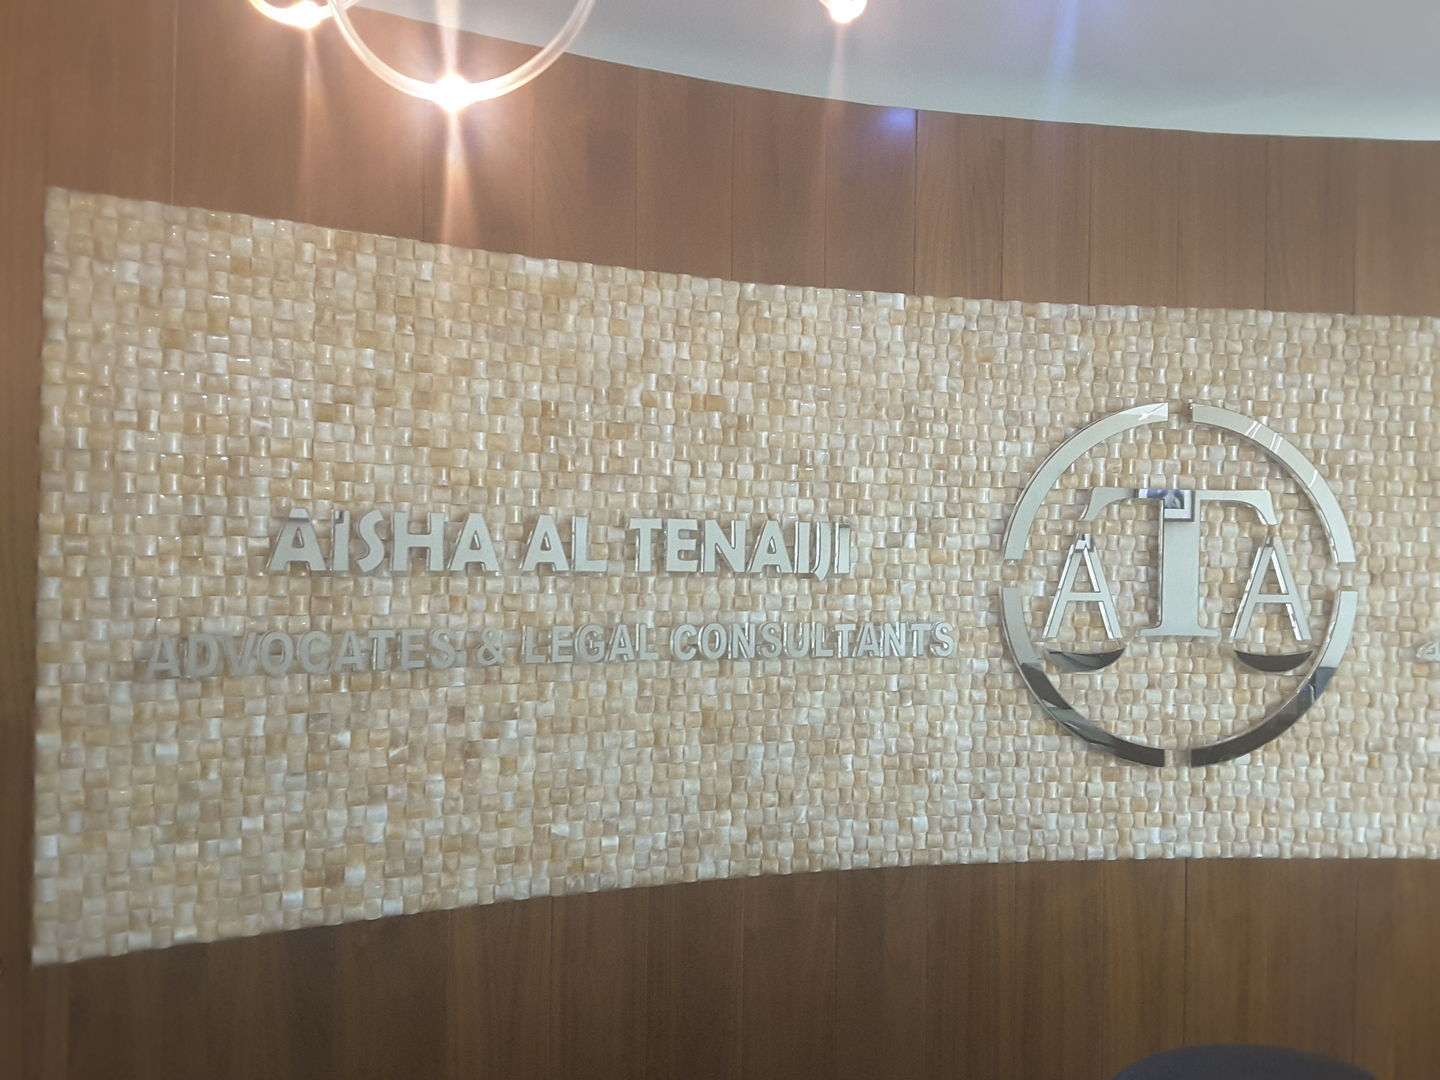 HiDubai-business-aisha-al-tenaiji-advocates-legal-consultants-finance-legal-legal-services-port-saeed-dubai-2